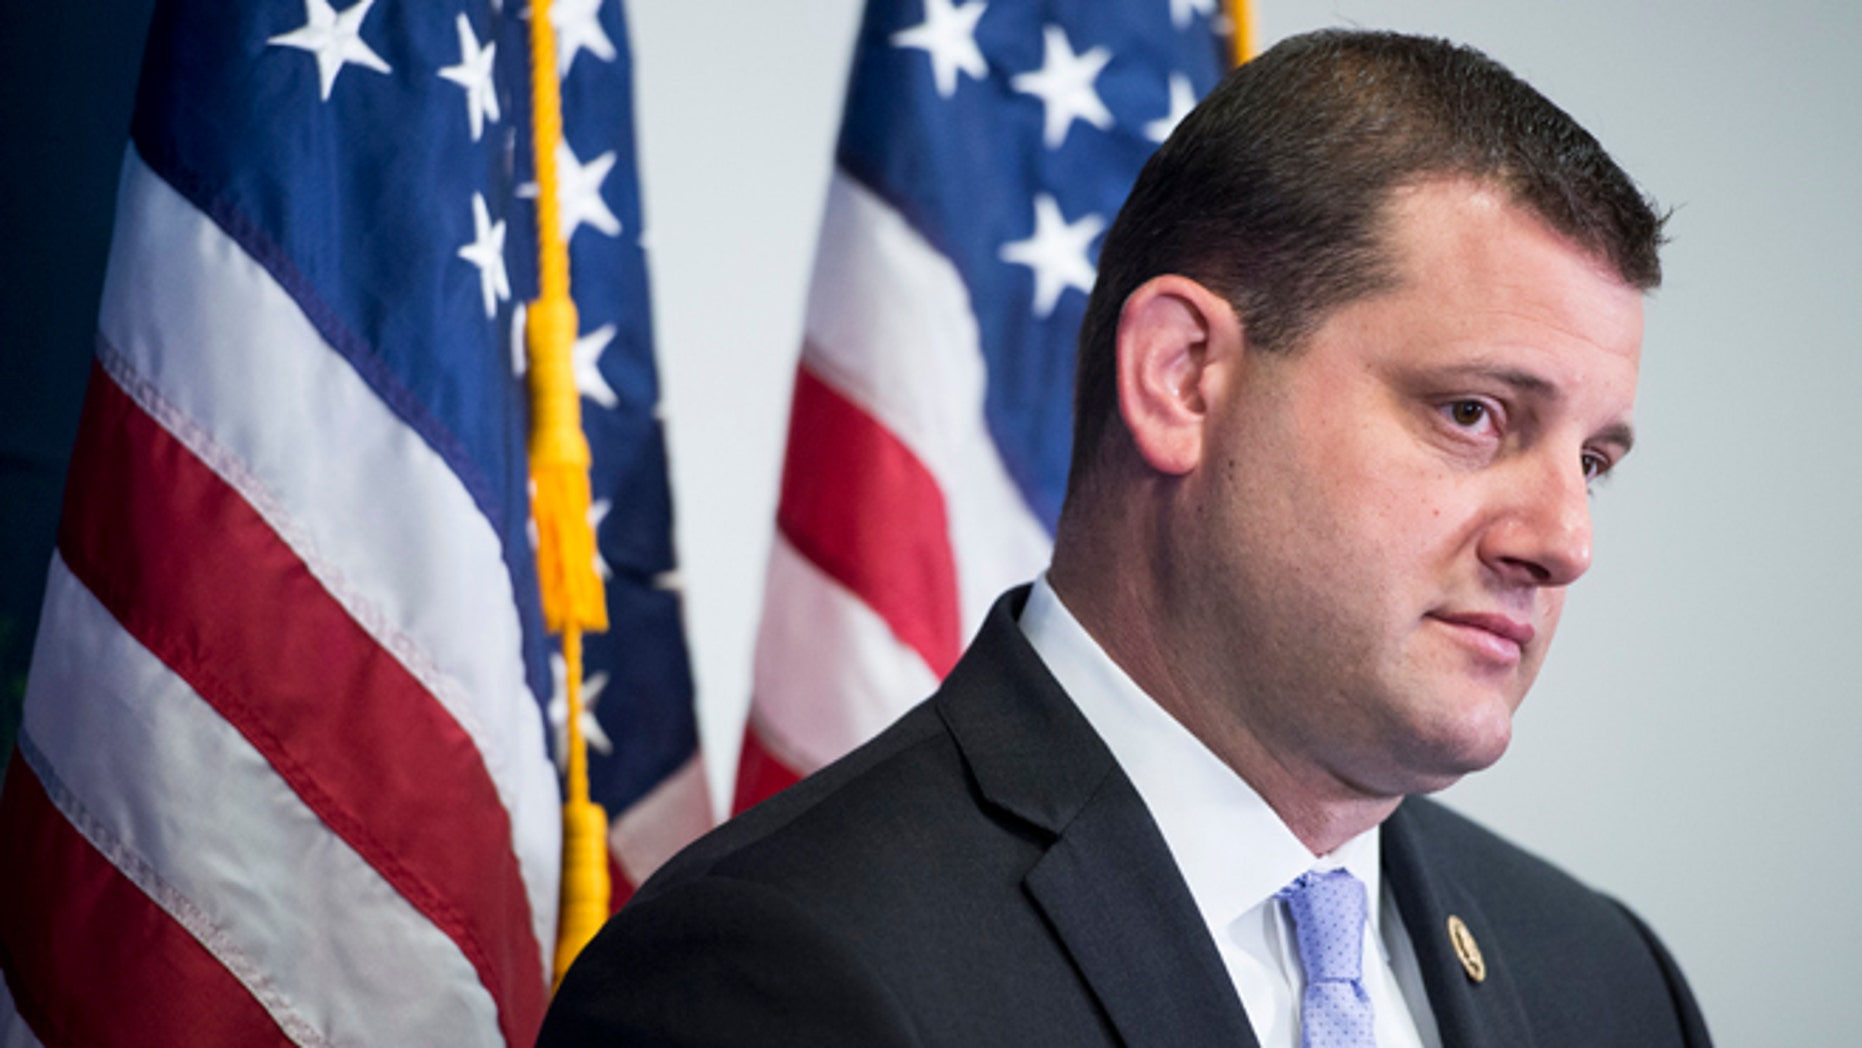 UNITED STATES - JULY 14: Rep. David Valadao, R-Calif., participates in the House GOP leadership media availability following the House Republican Conference meeting in the Capitol on Tuesday, July 14, 2015. (Photo By Bill Clark/CQ Roll Call)